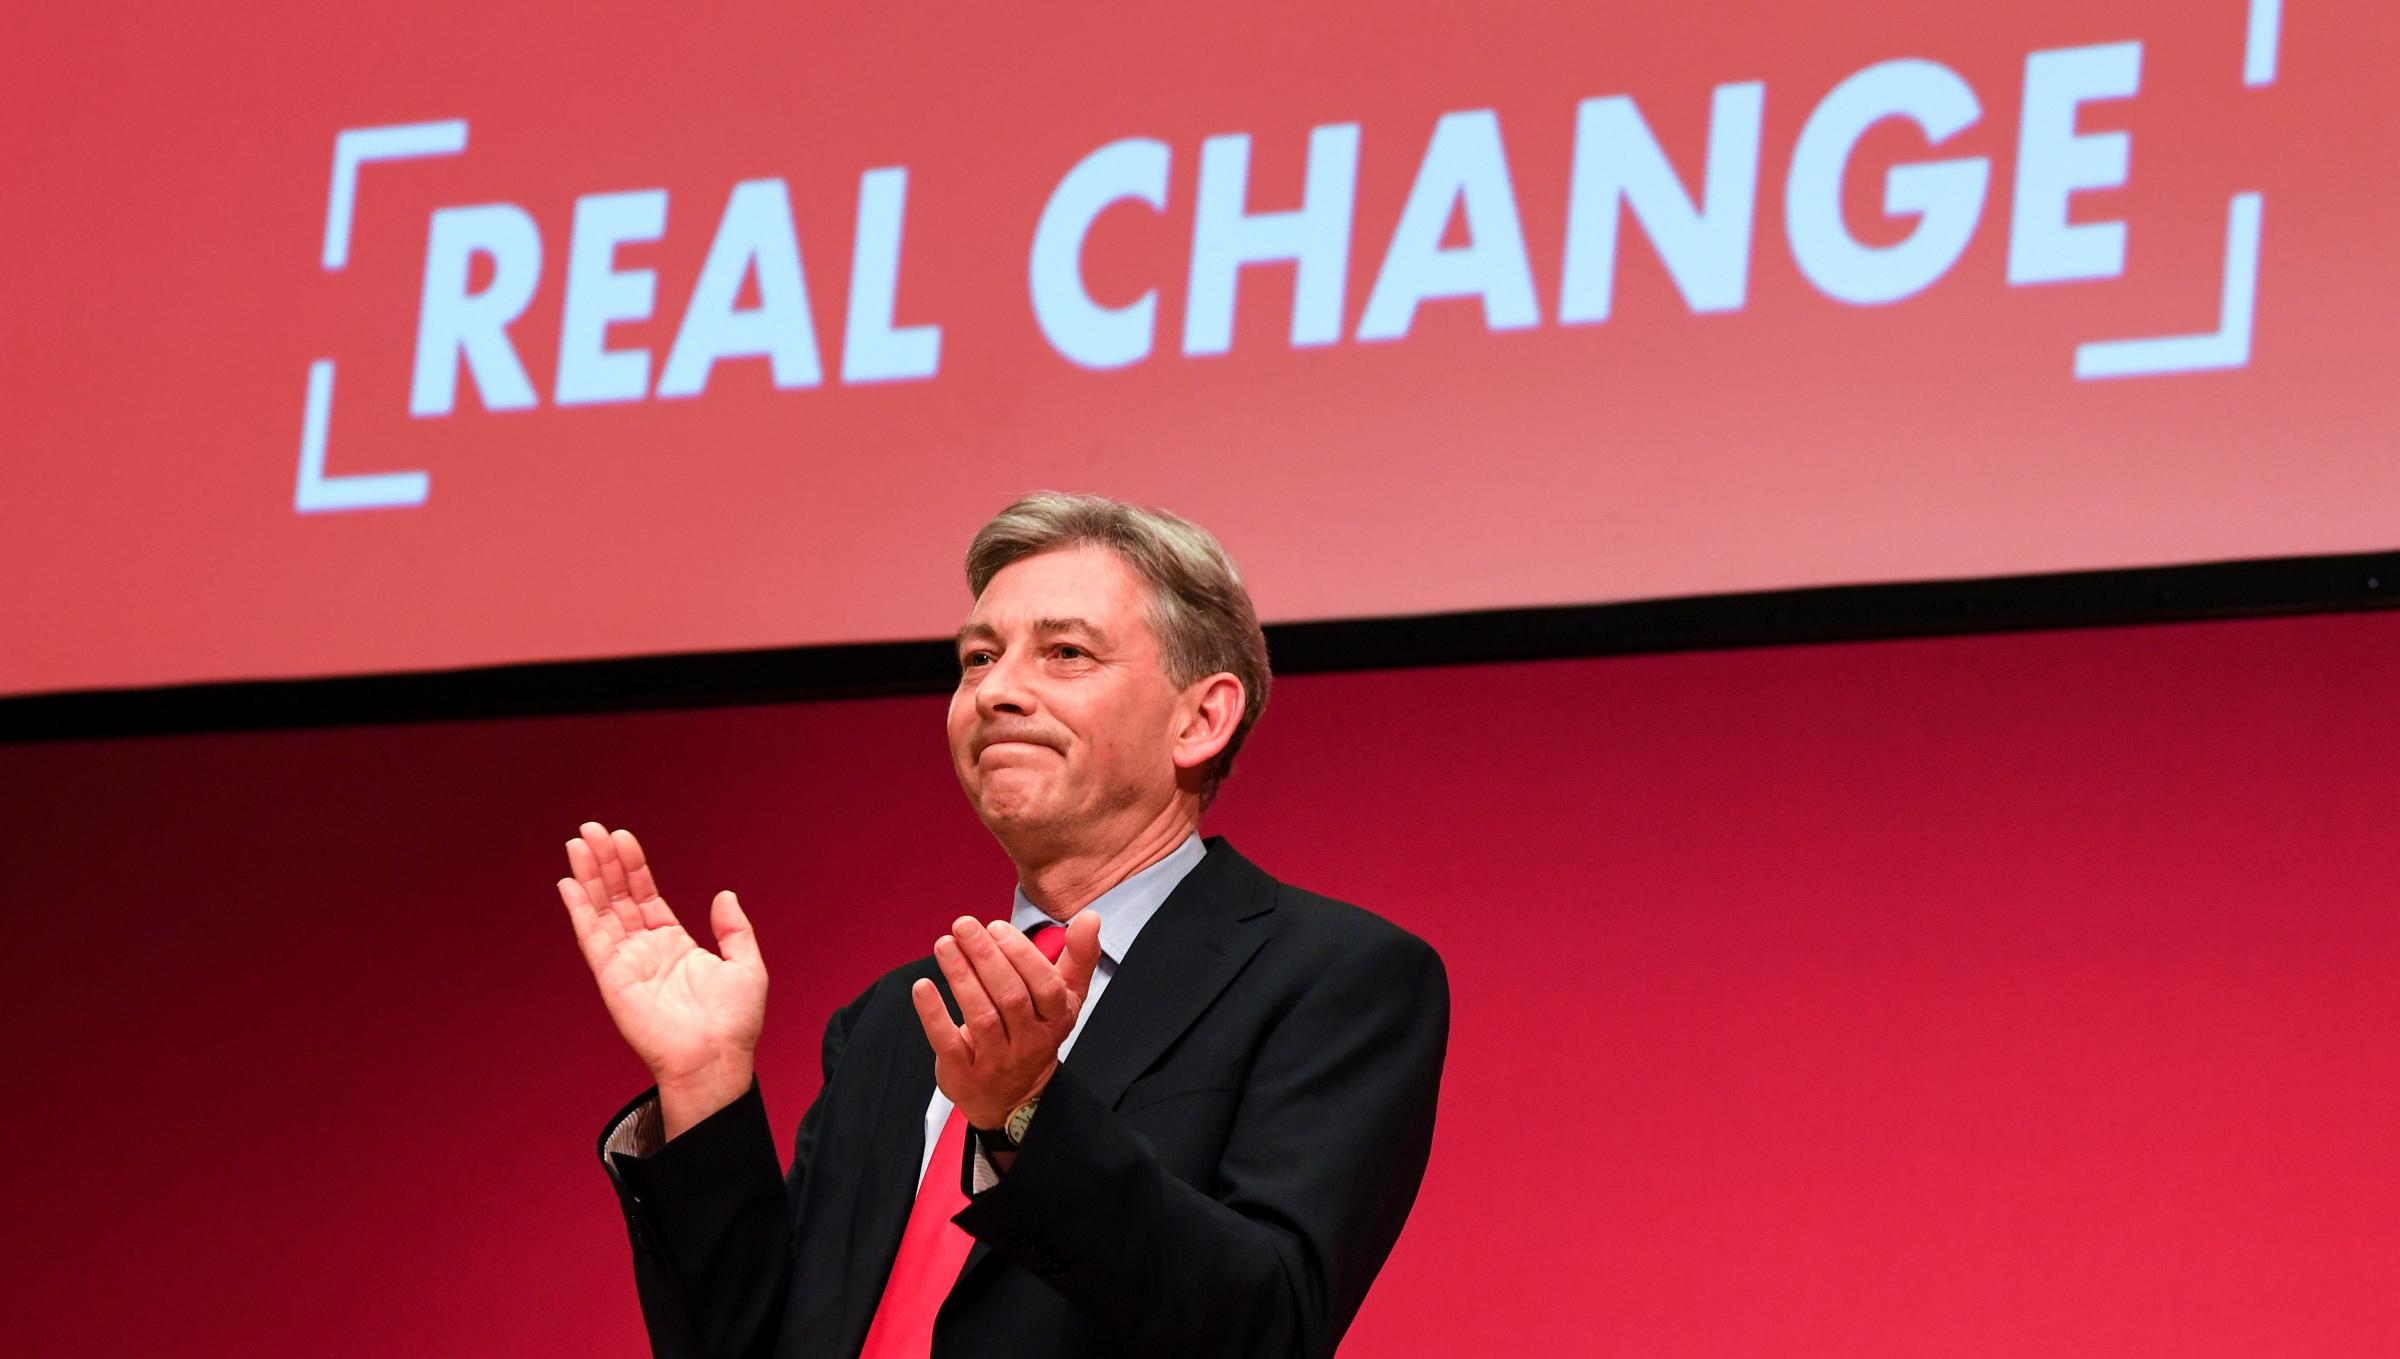 Richard Leonard repeatedly attacked the SNP during his speech. Photograph: Getty